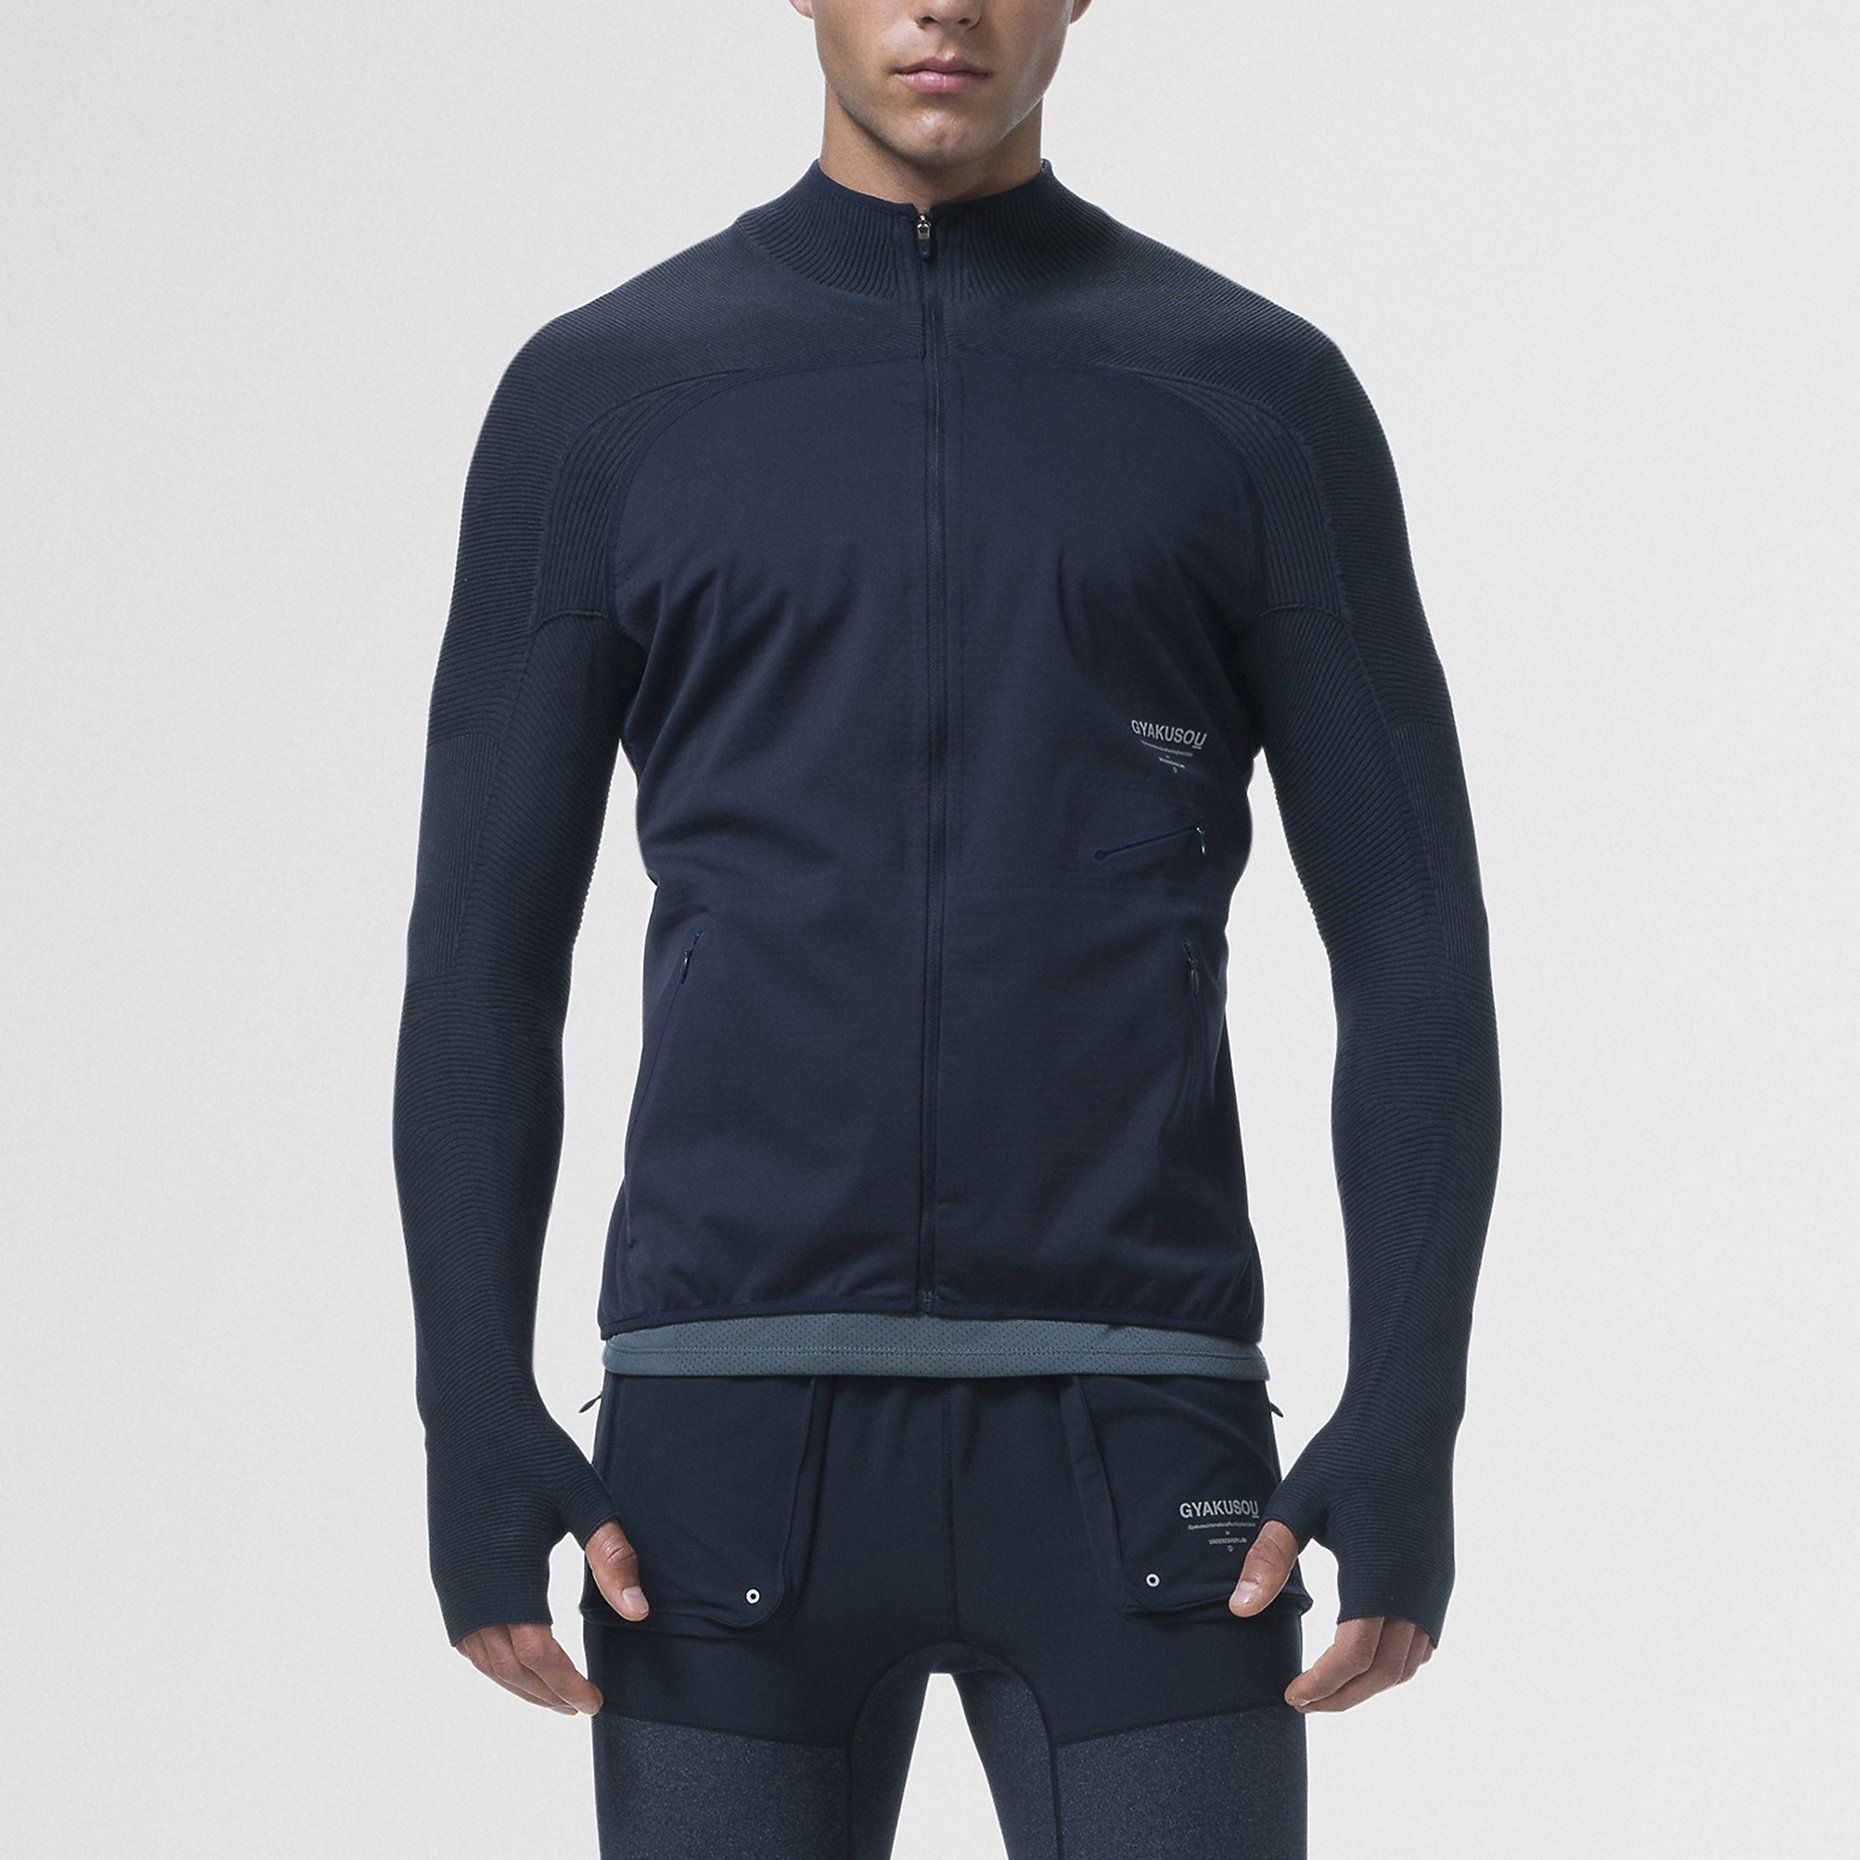 release date 89a25 30f29 Nike Gyakusou Engineered Knit-Sleeve Composite Men s Running Jacket